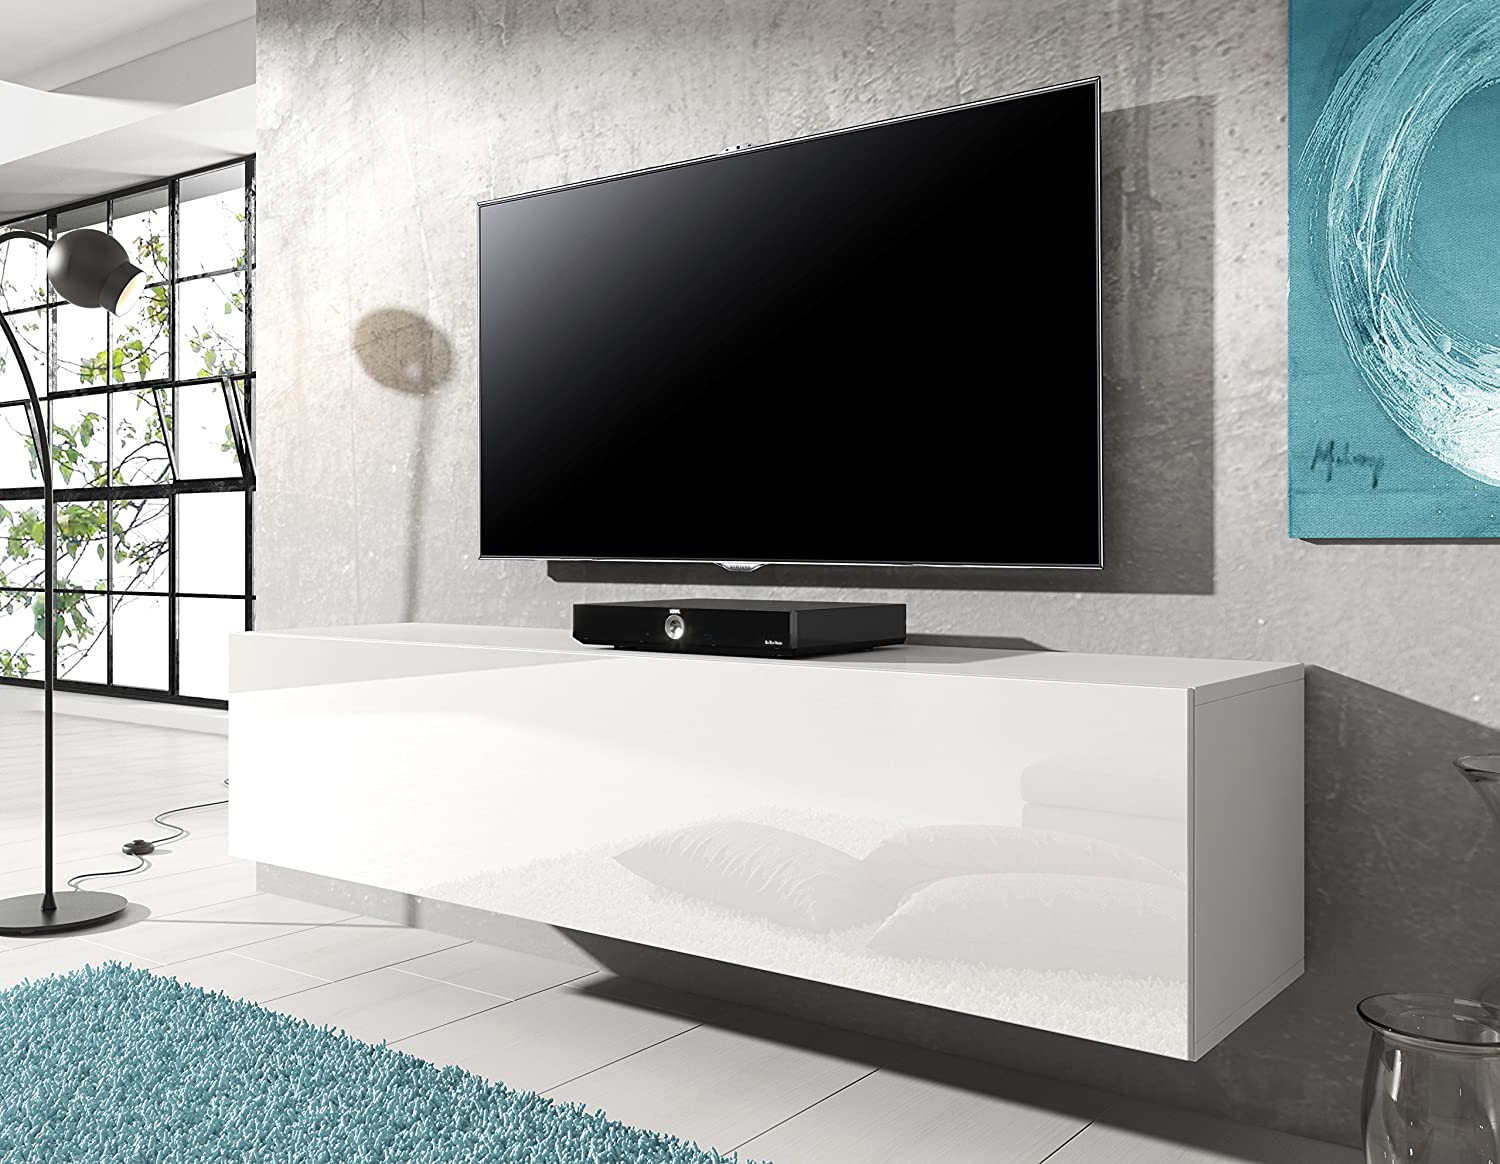 Meuble Tv Suspendu Rocco 140 Cm Blanc Mat Frontal Avec Brillant  # Meuble Bas Tv Suspendu